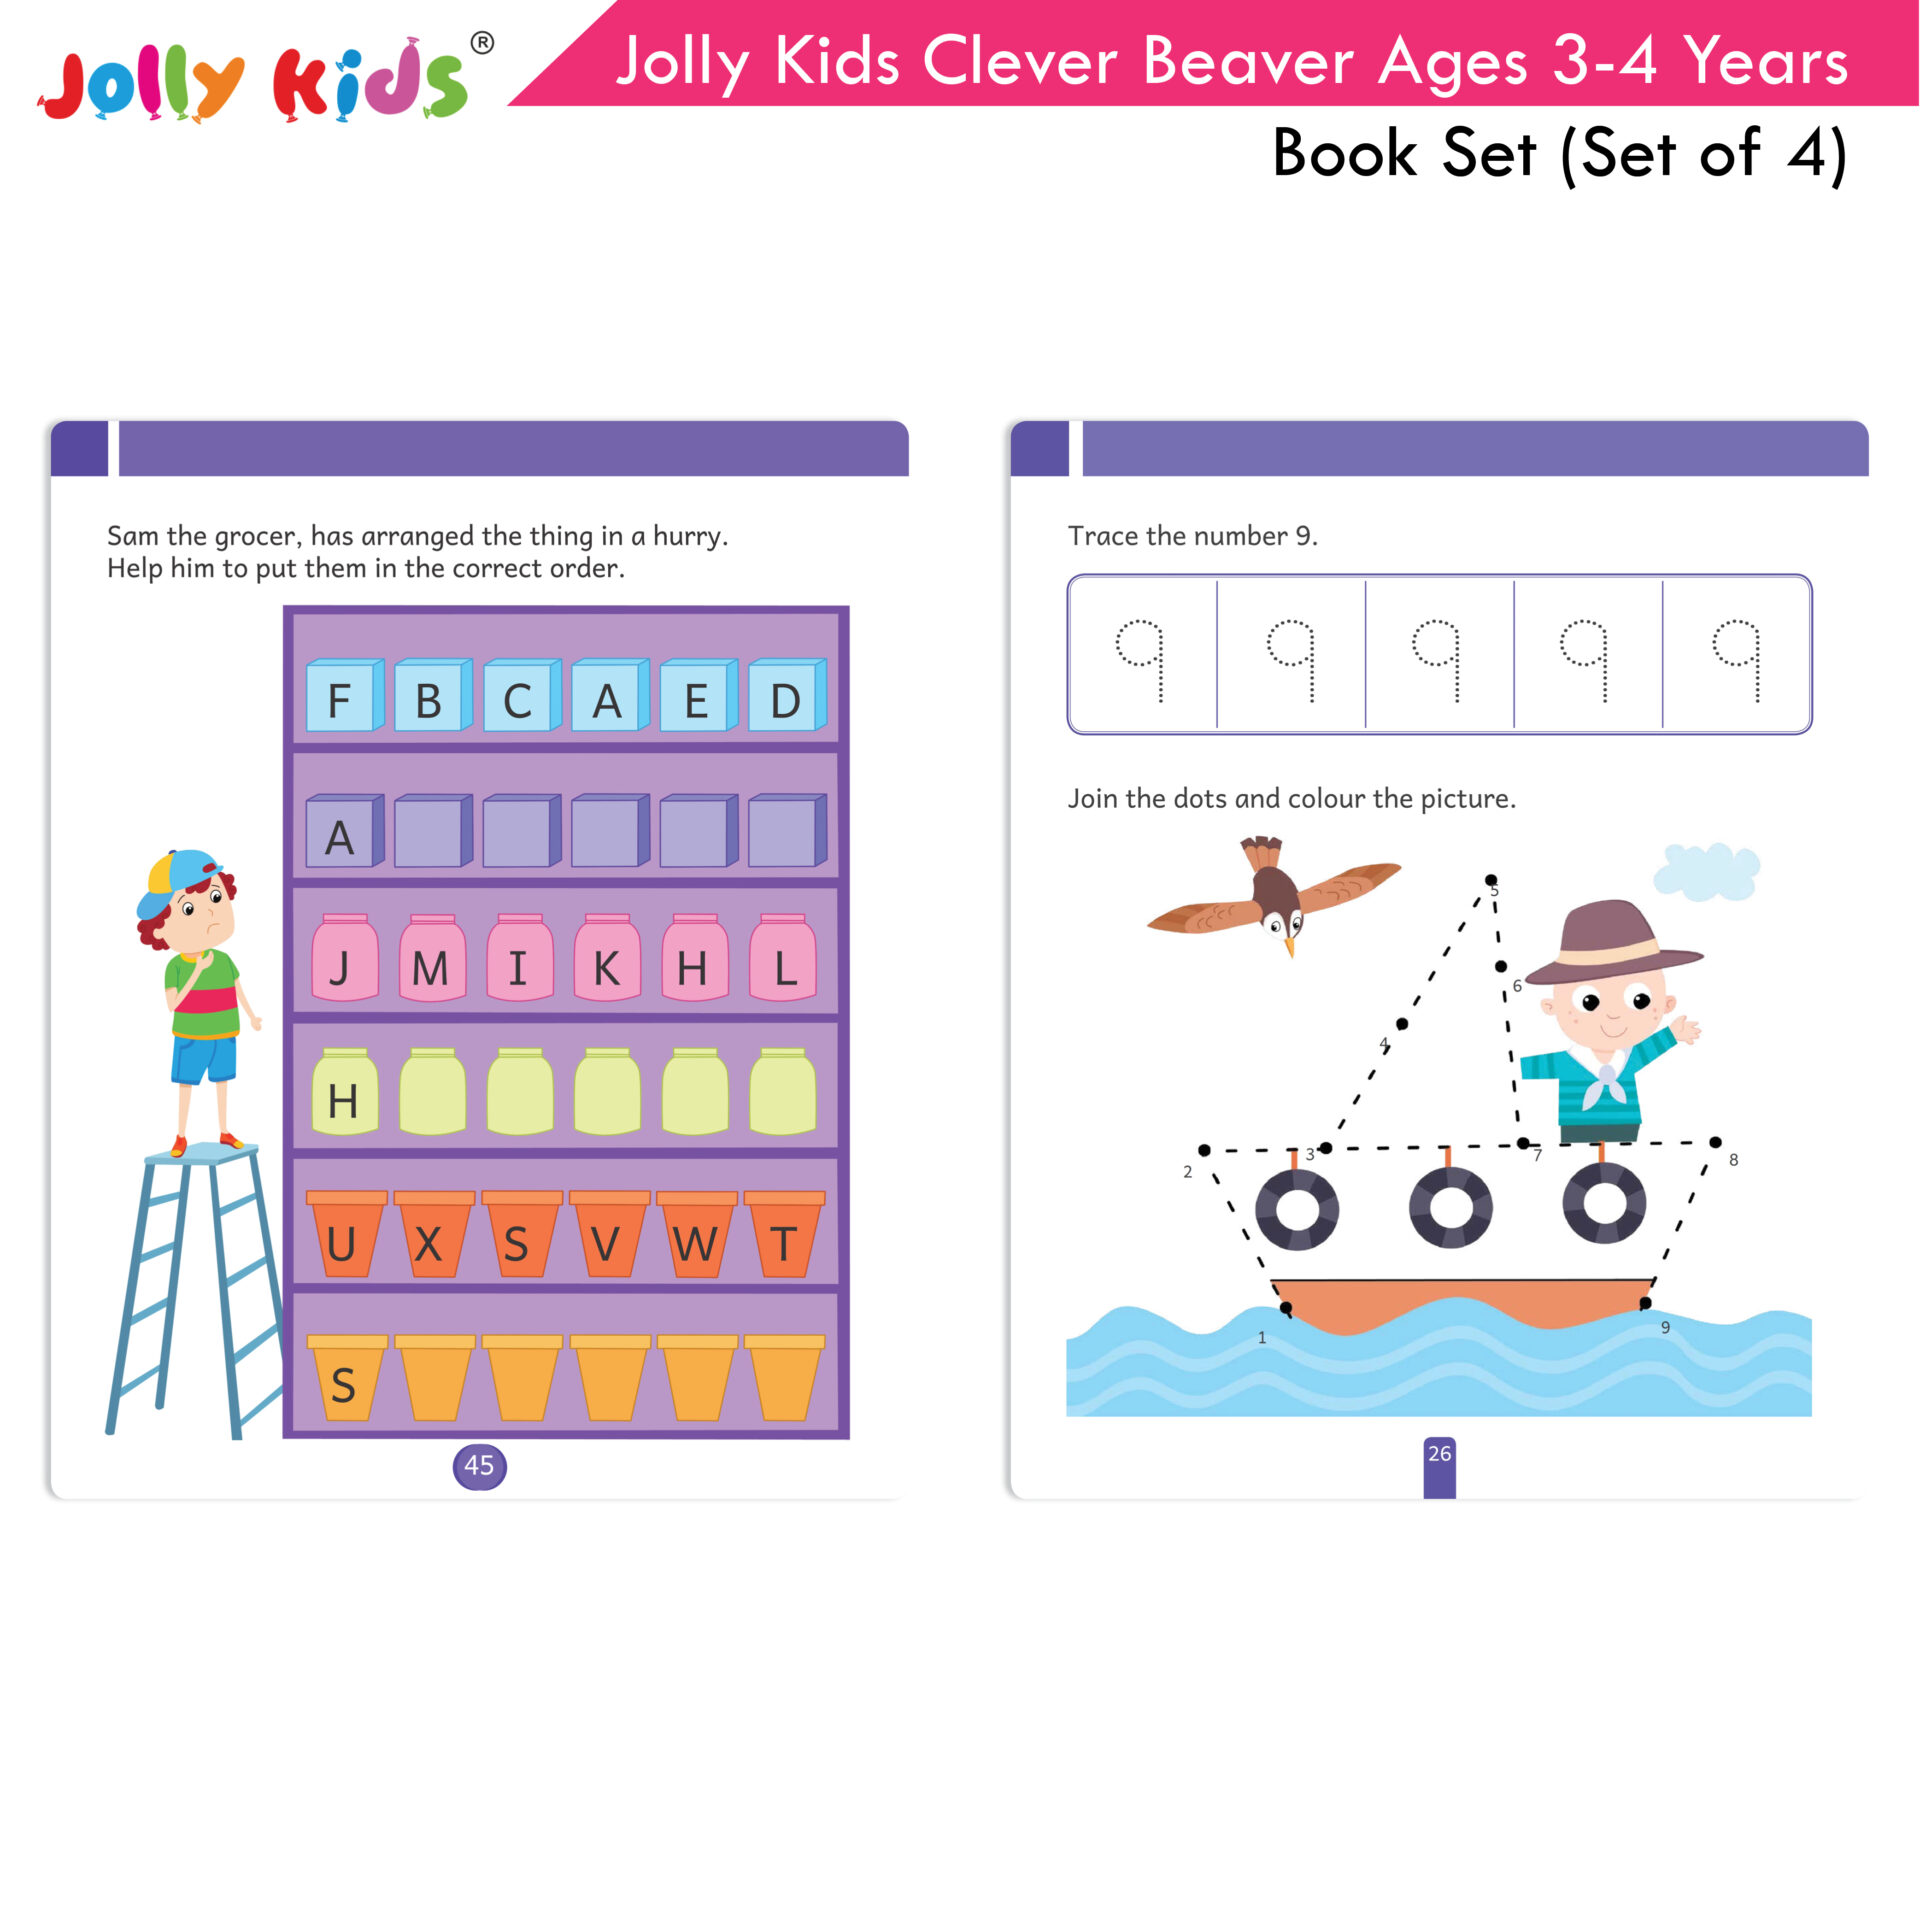 Jolly Kids Clever Beaver Ages 3 4 Years Book Set Set of 4 4